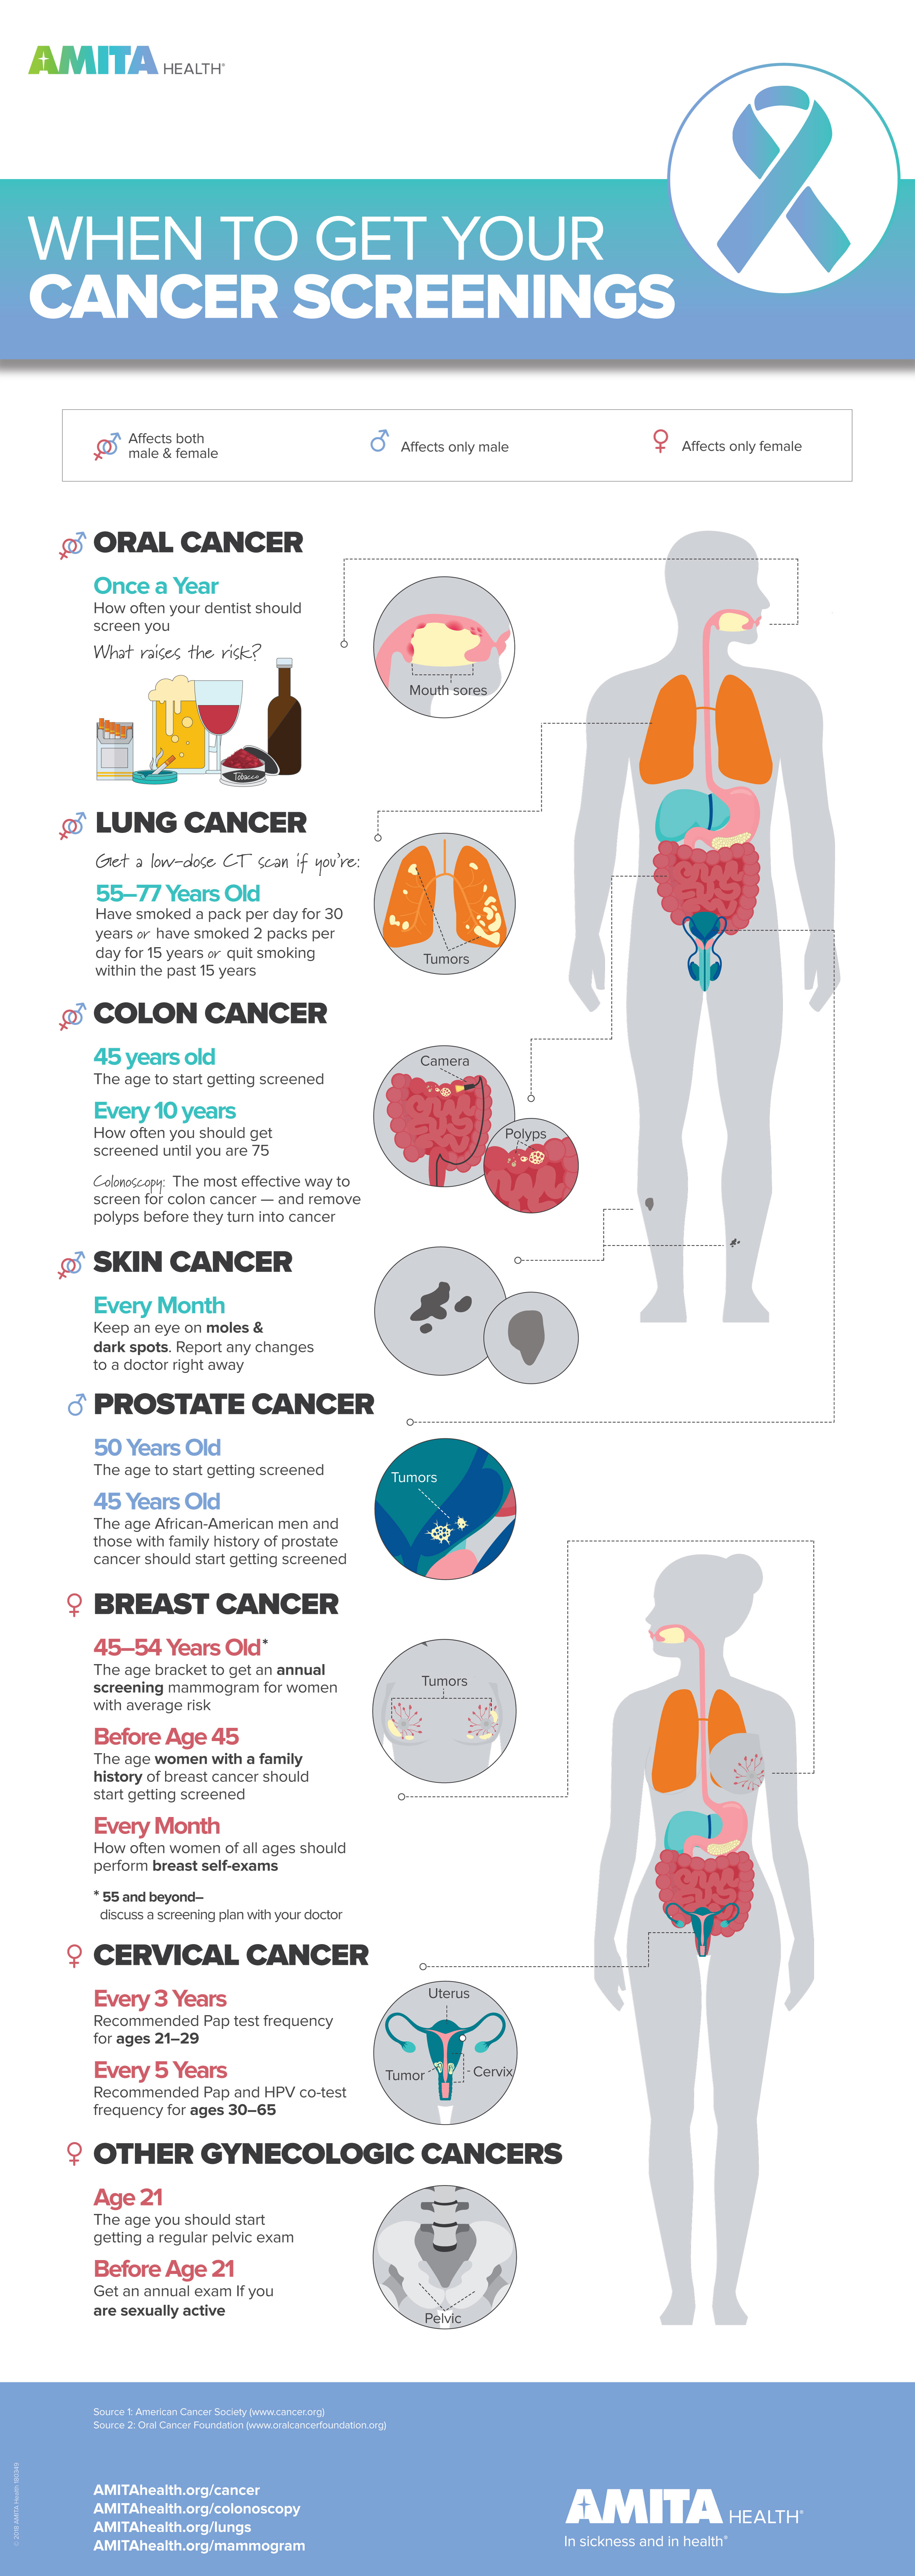 Are You Caught Up On Your Cancer Screenings